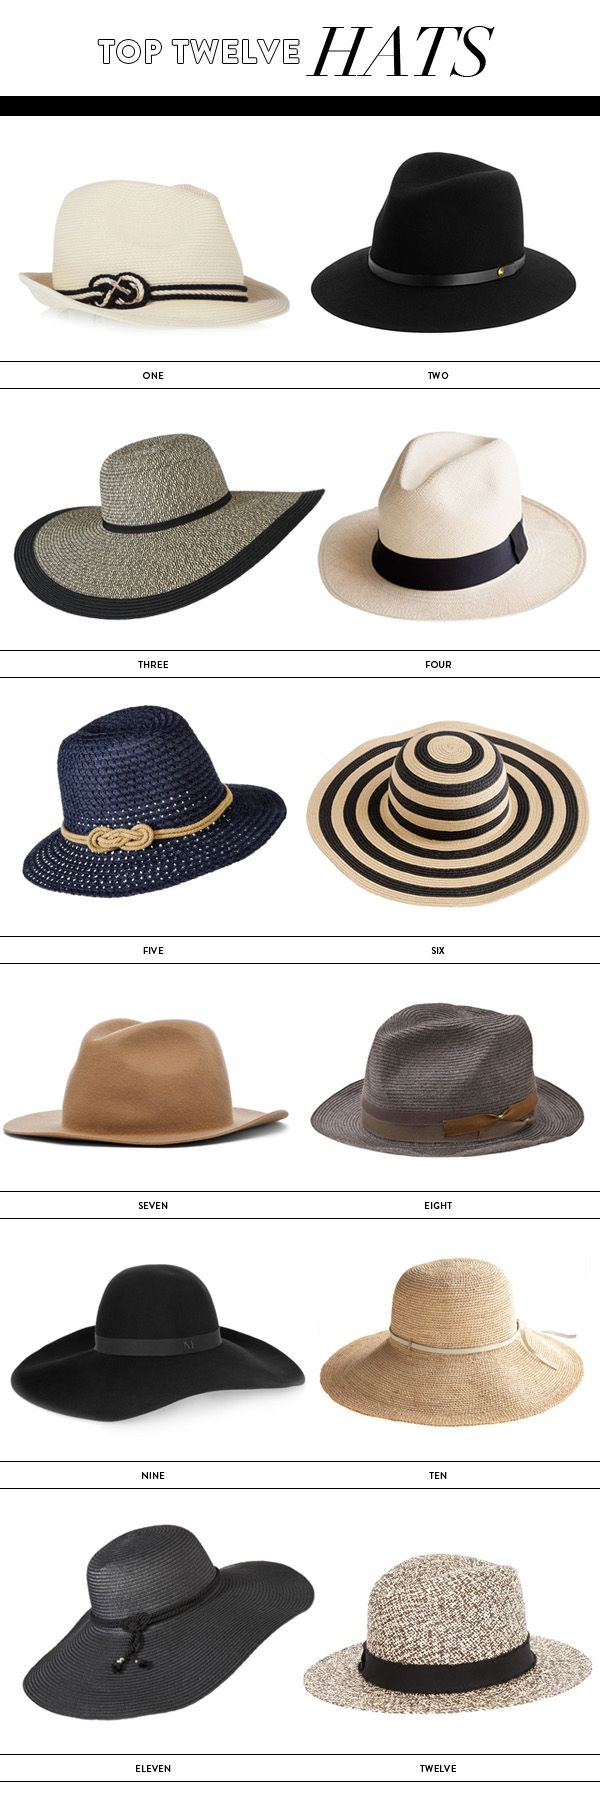 http://www.megbiram.com/top-twelve-hats/